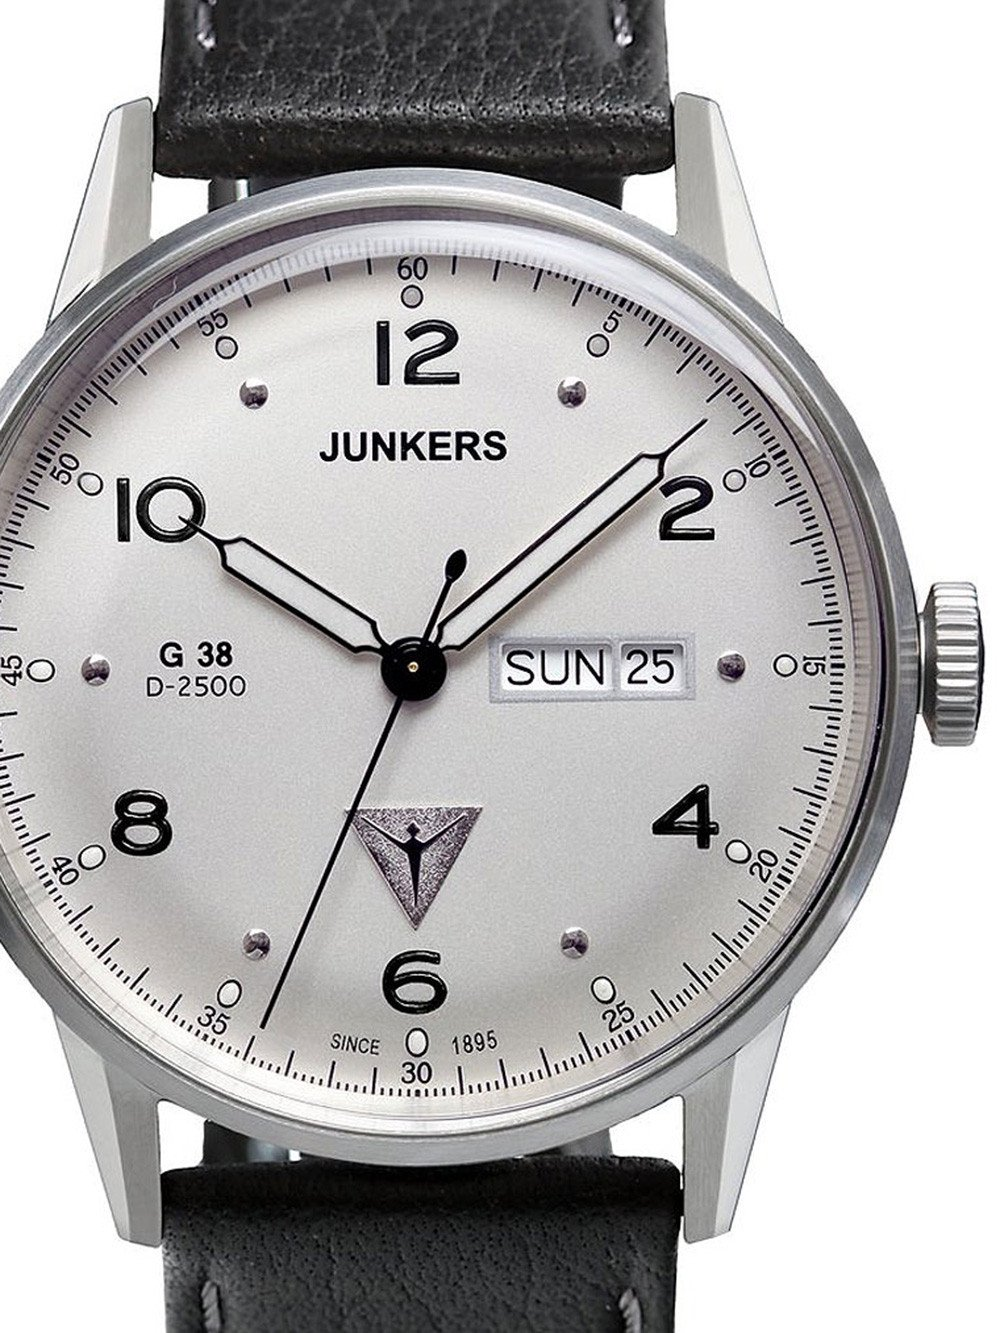 Junkers G38 6944-1 Day-Date Quartz 10 ATM 42 mm